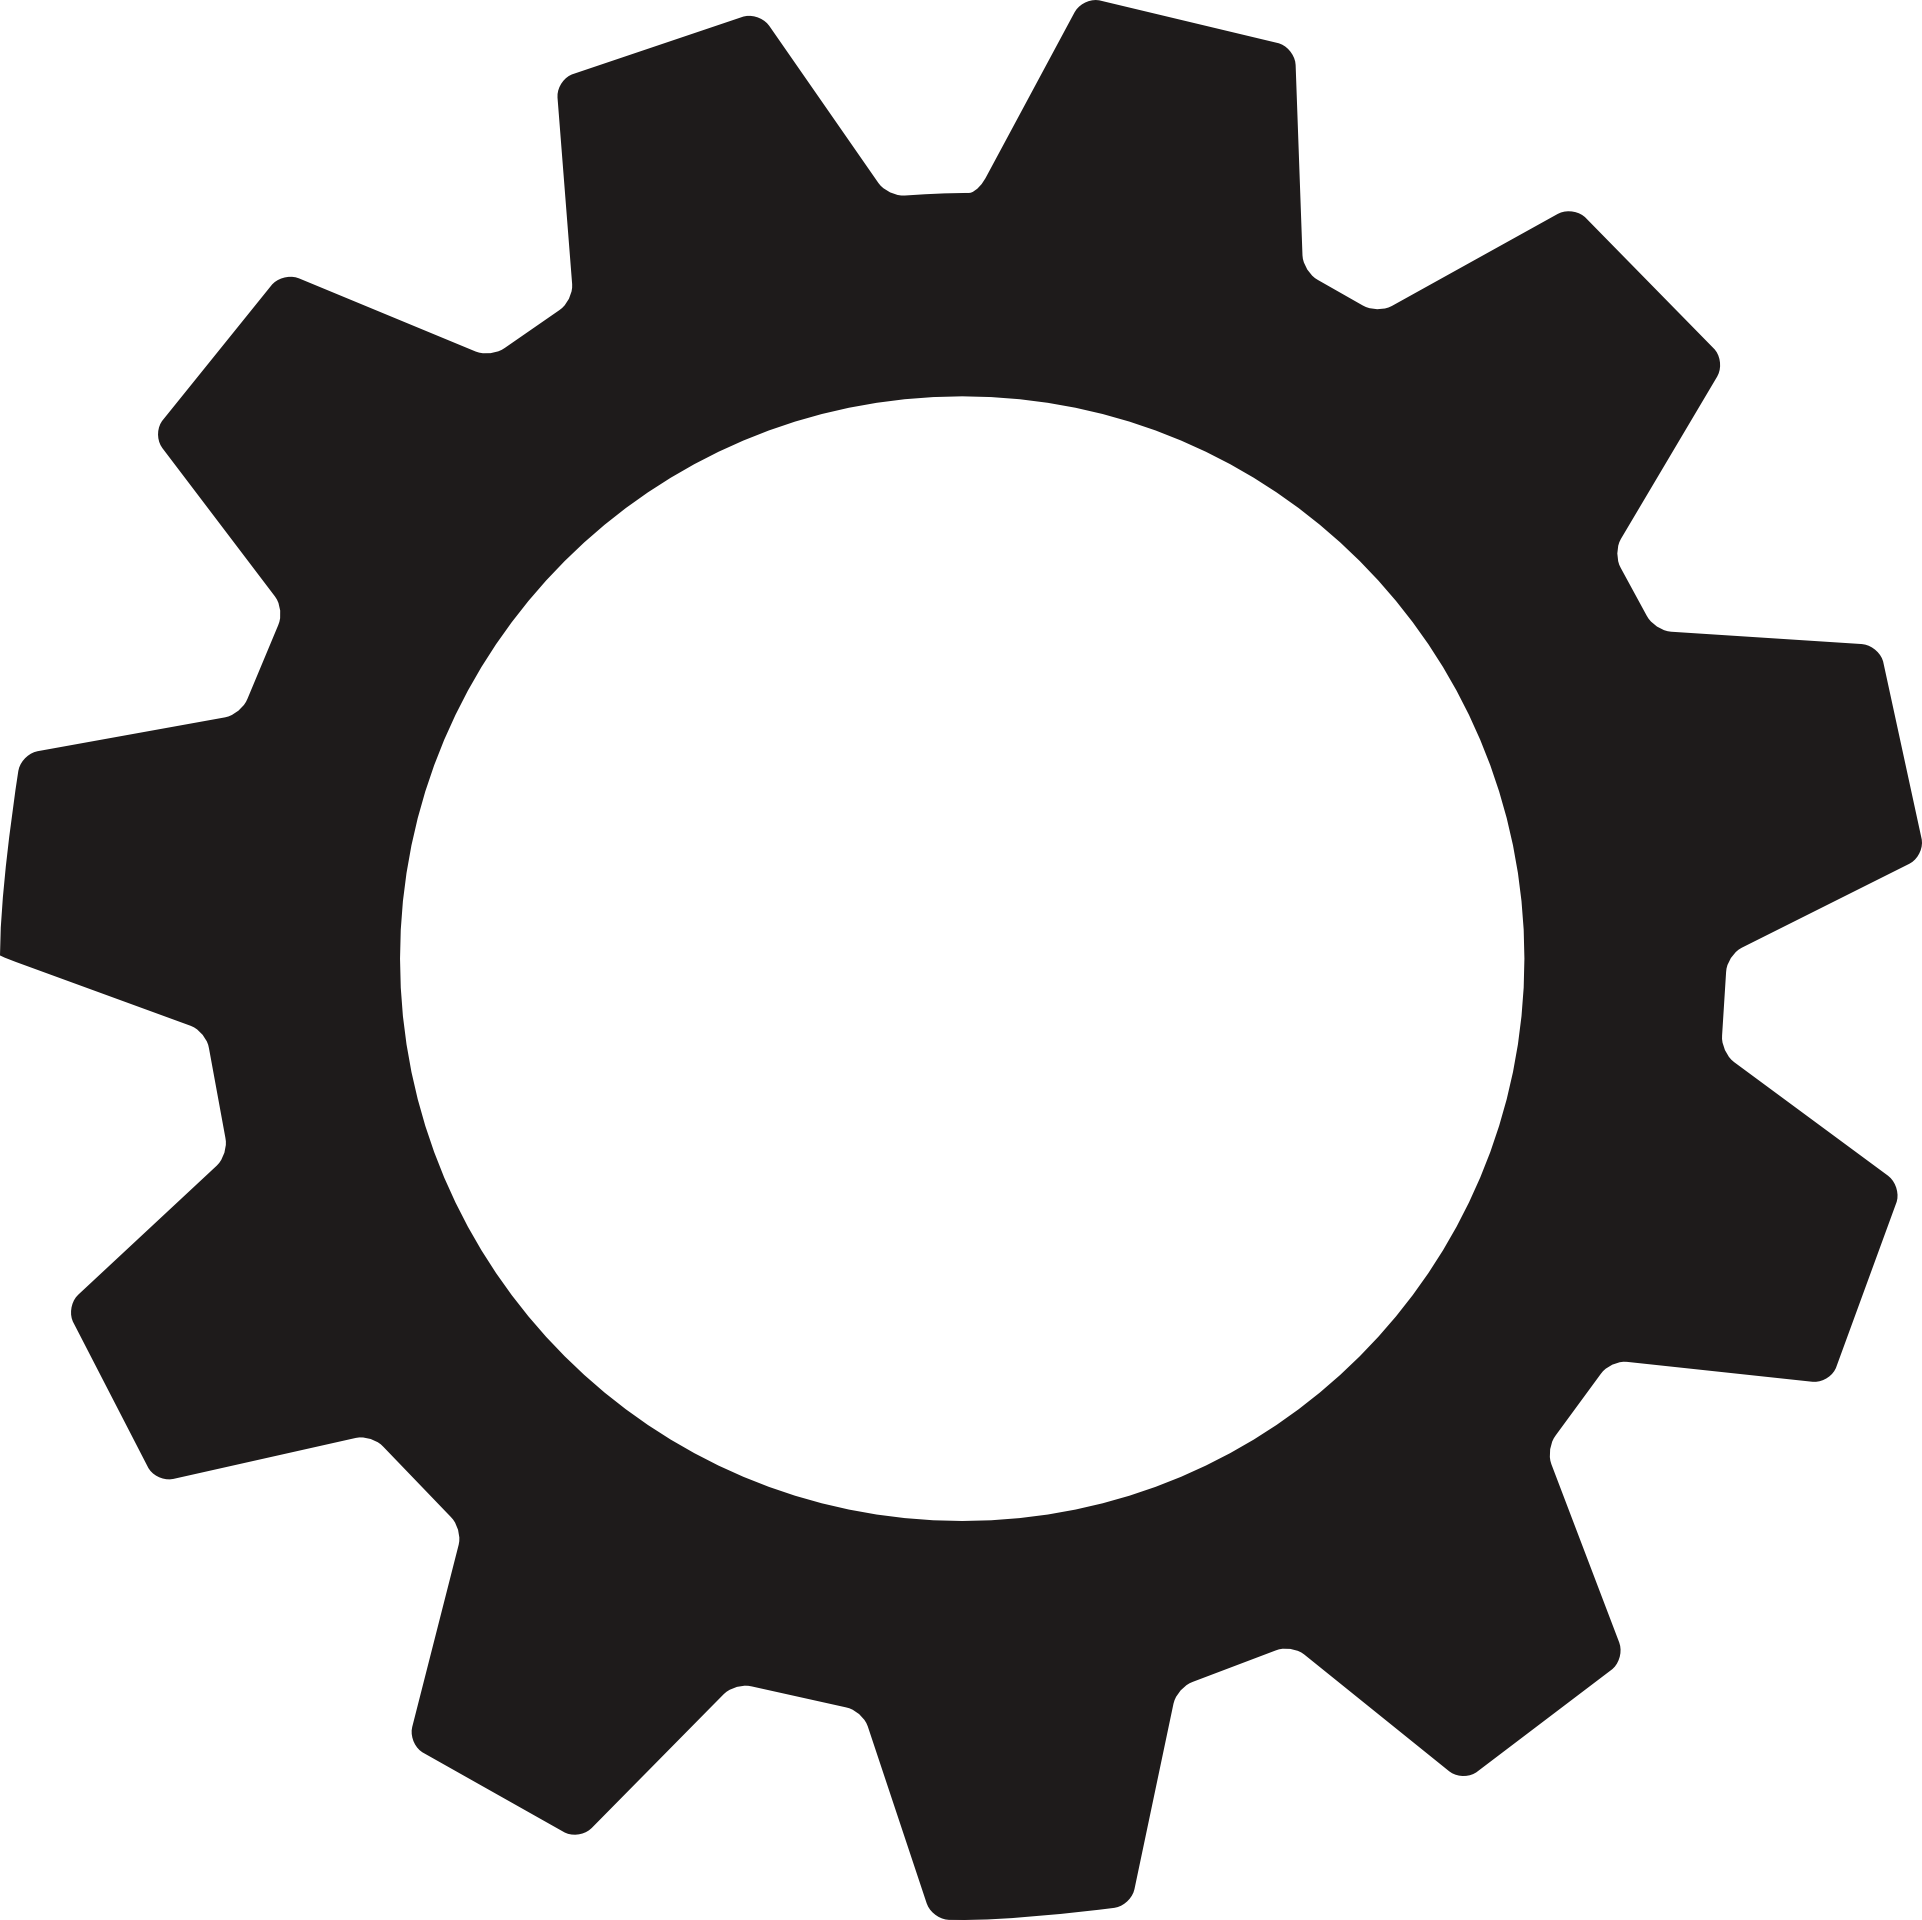 Industry clipart gear wheel. Icon of free image